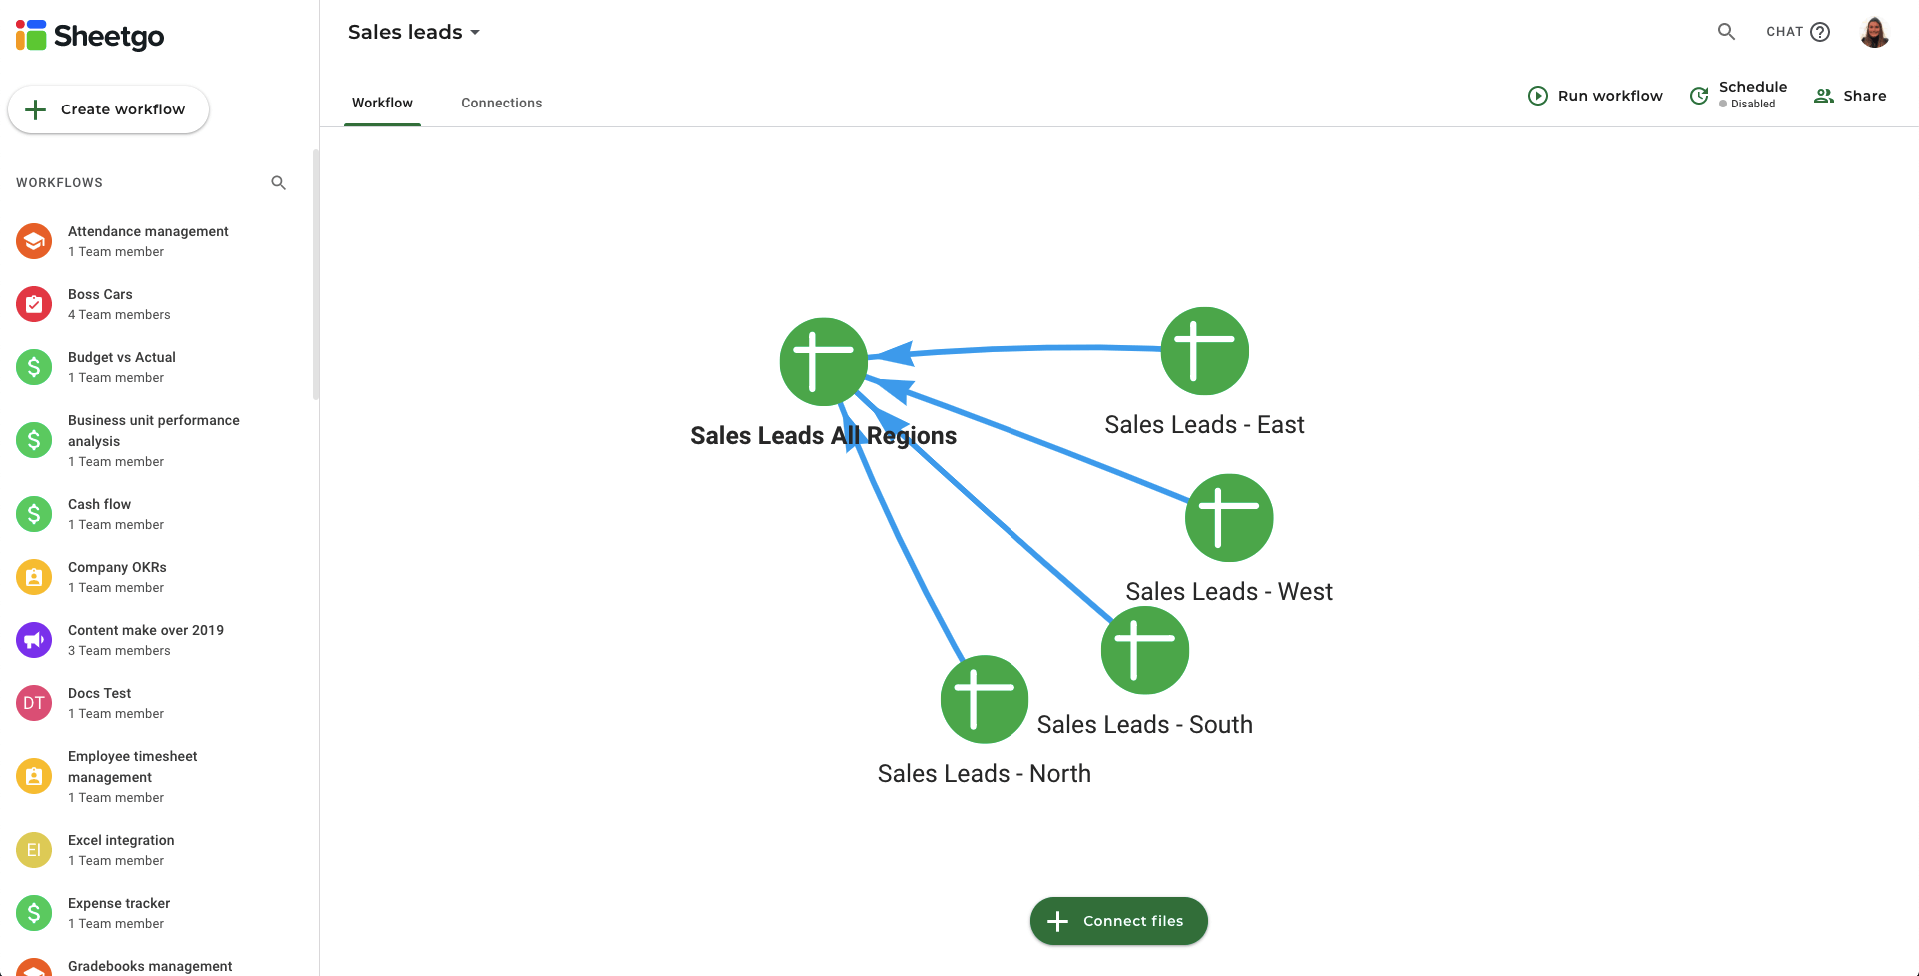 Workflow Data Structure: Network View of Connections